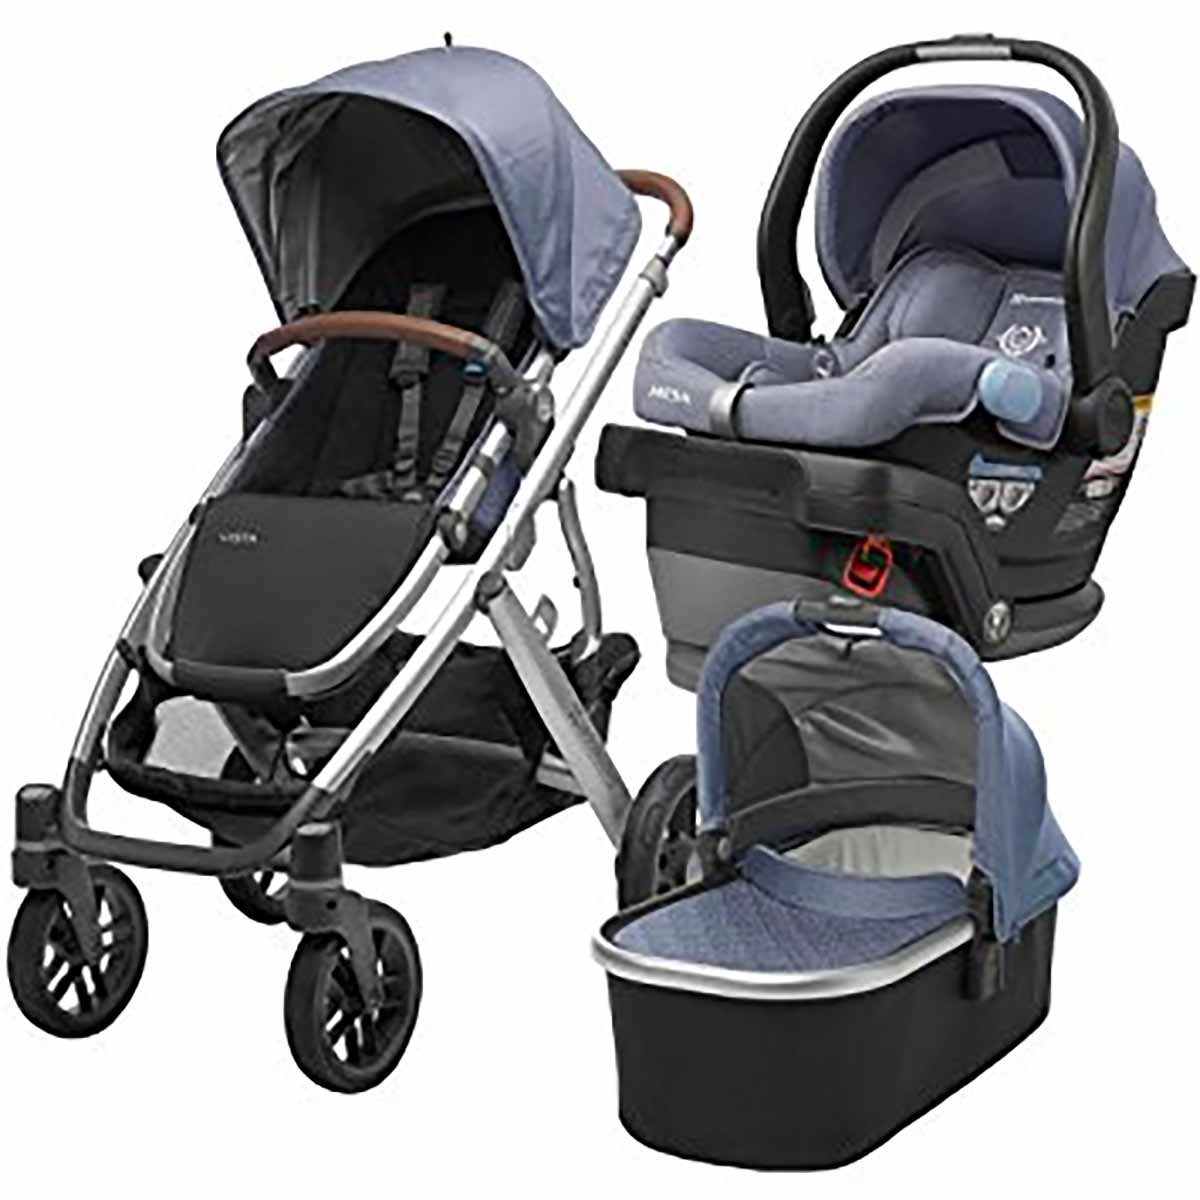 Top Lightweight Travel System Strollers Best Travel Systems For 2019 Expert Reviews Mommyhood101